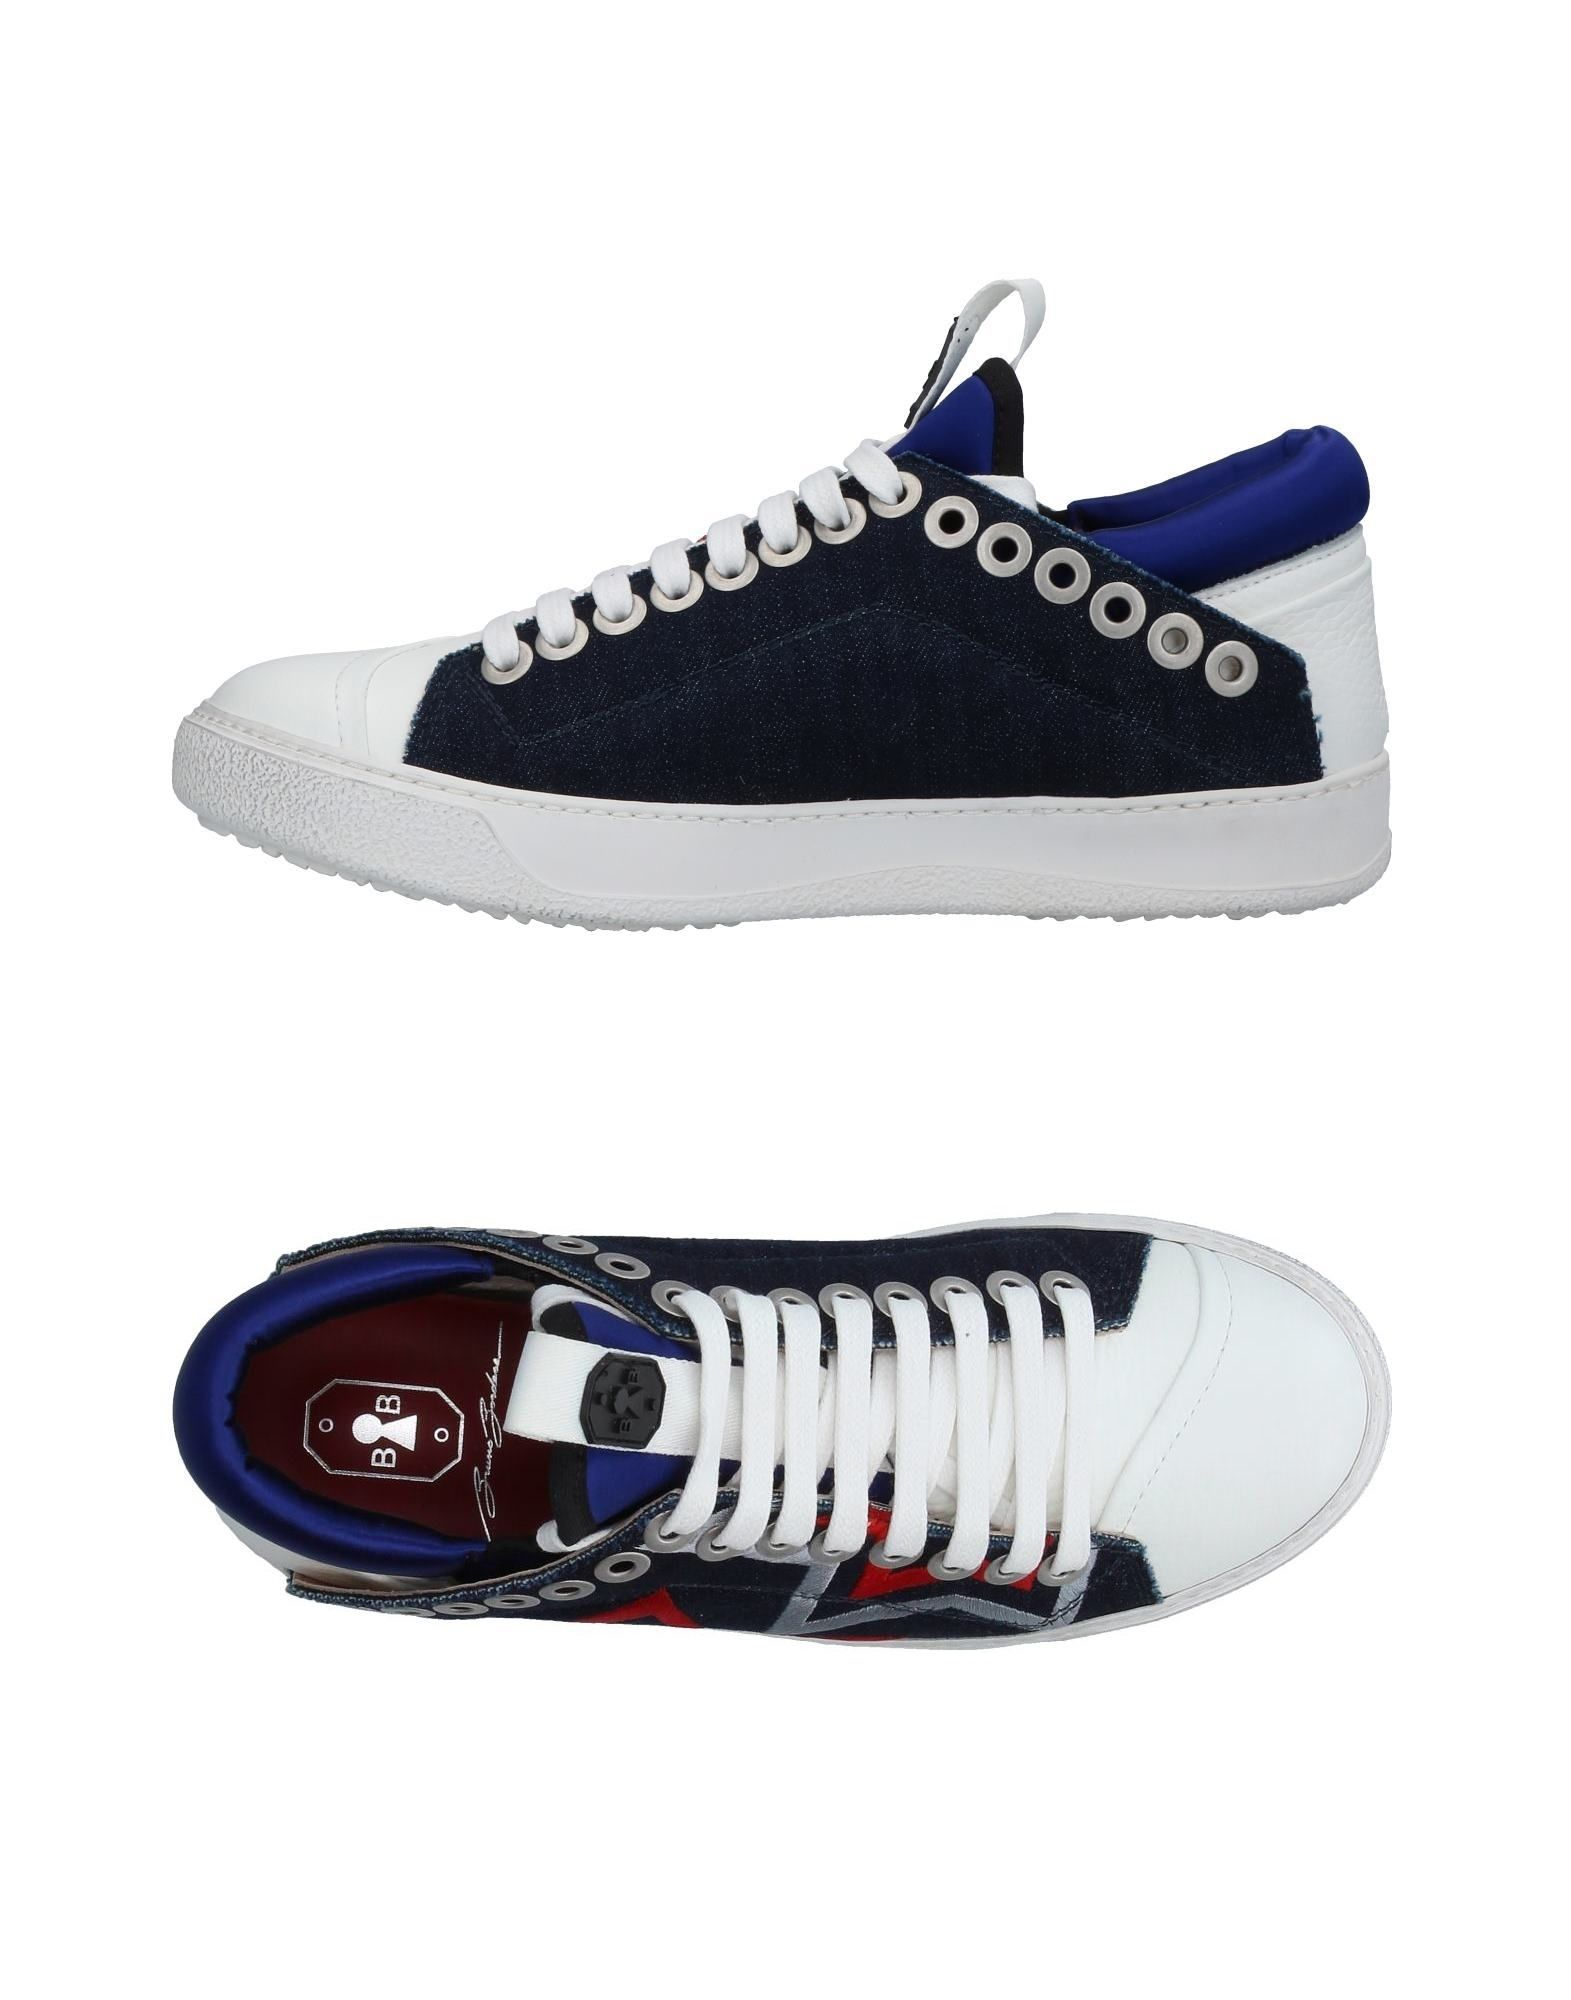 BRUNO BORDESE Sneakers in Blue